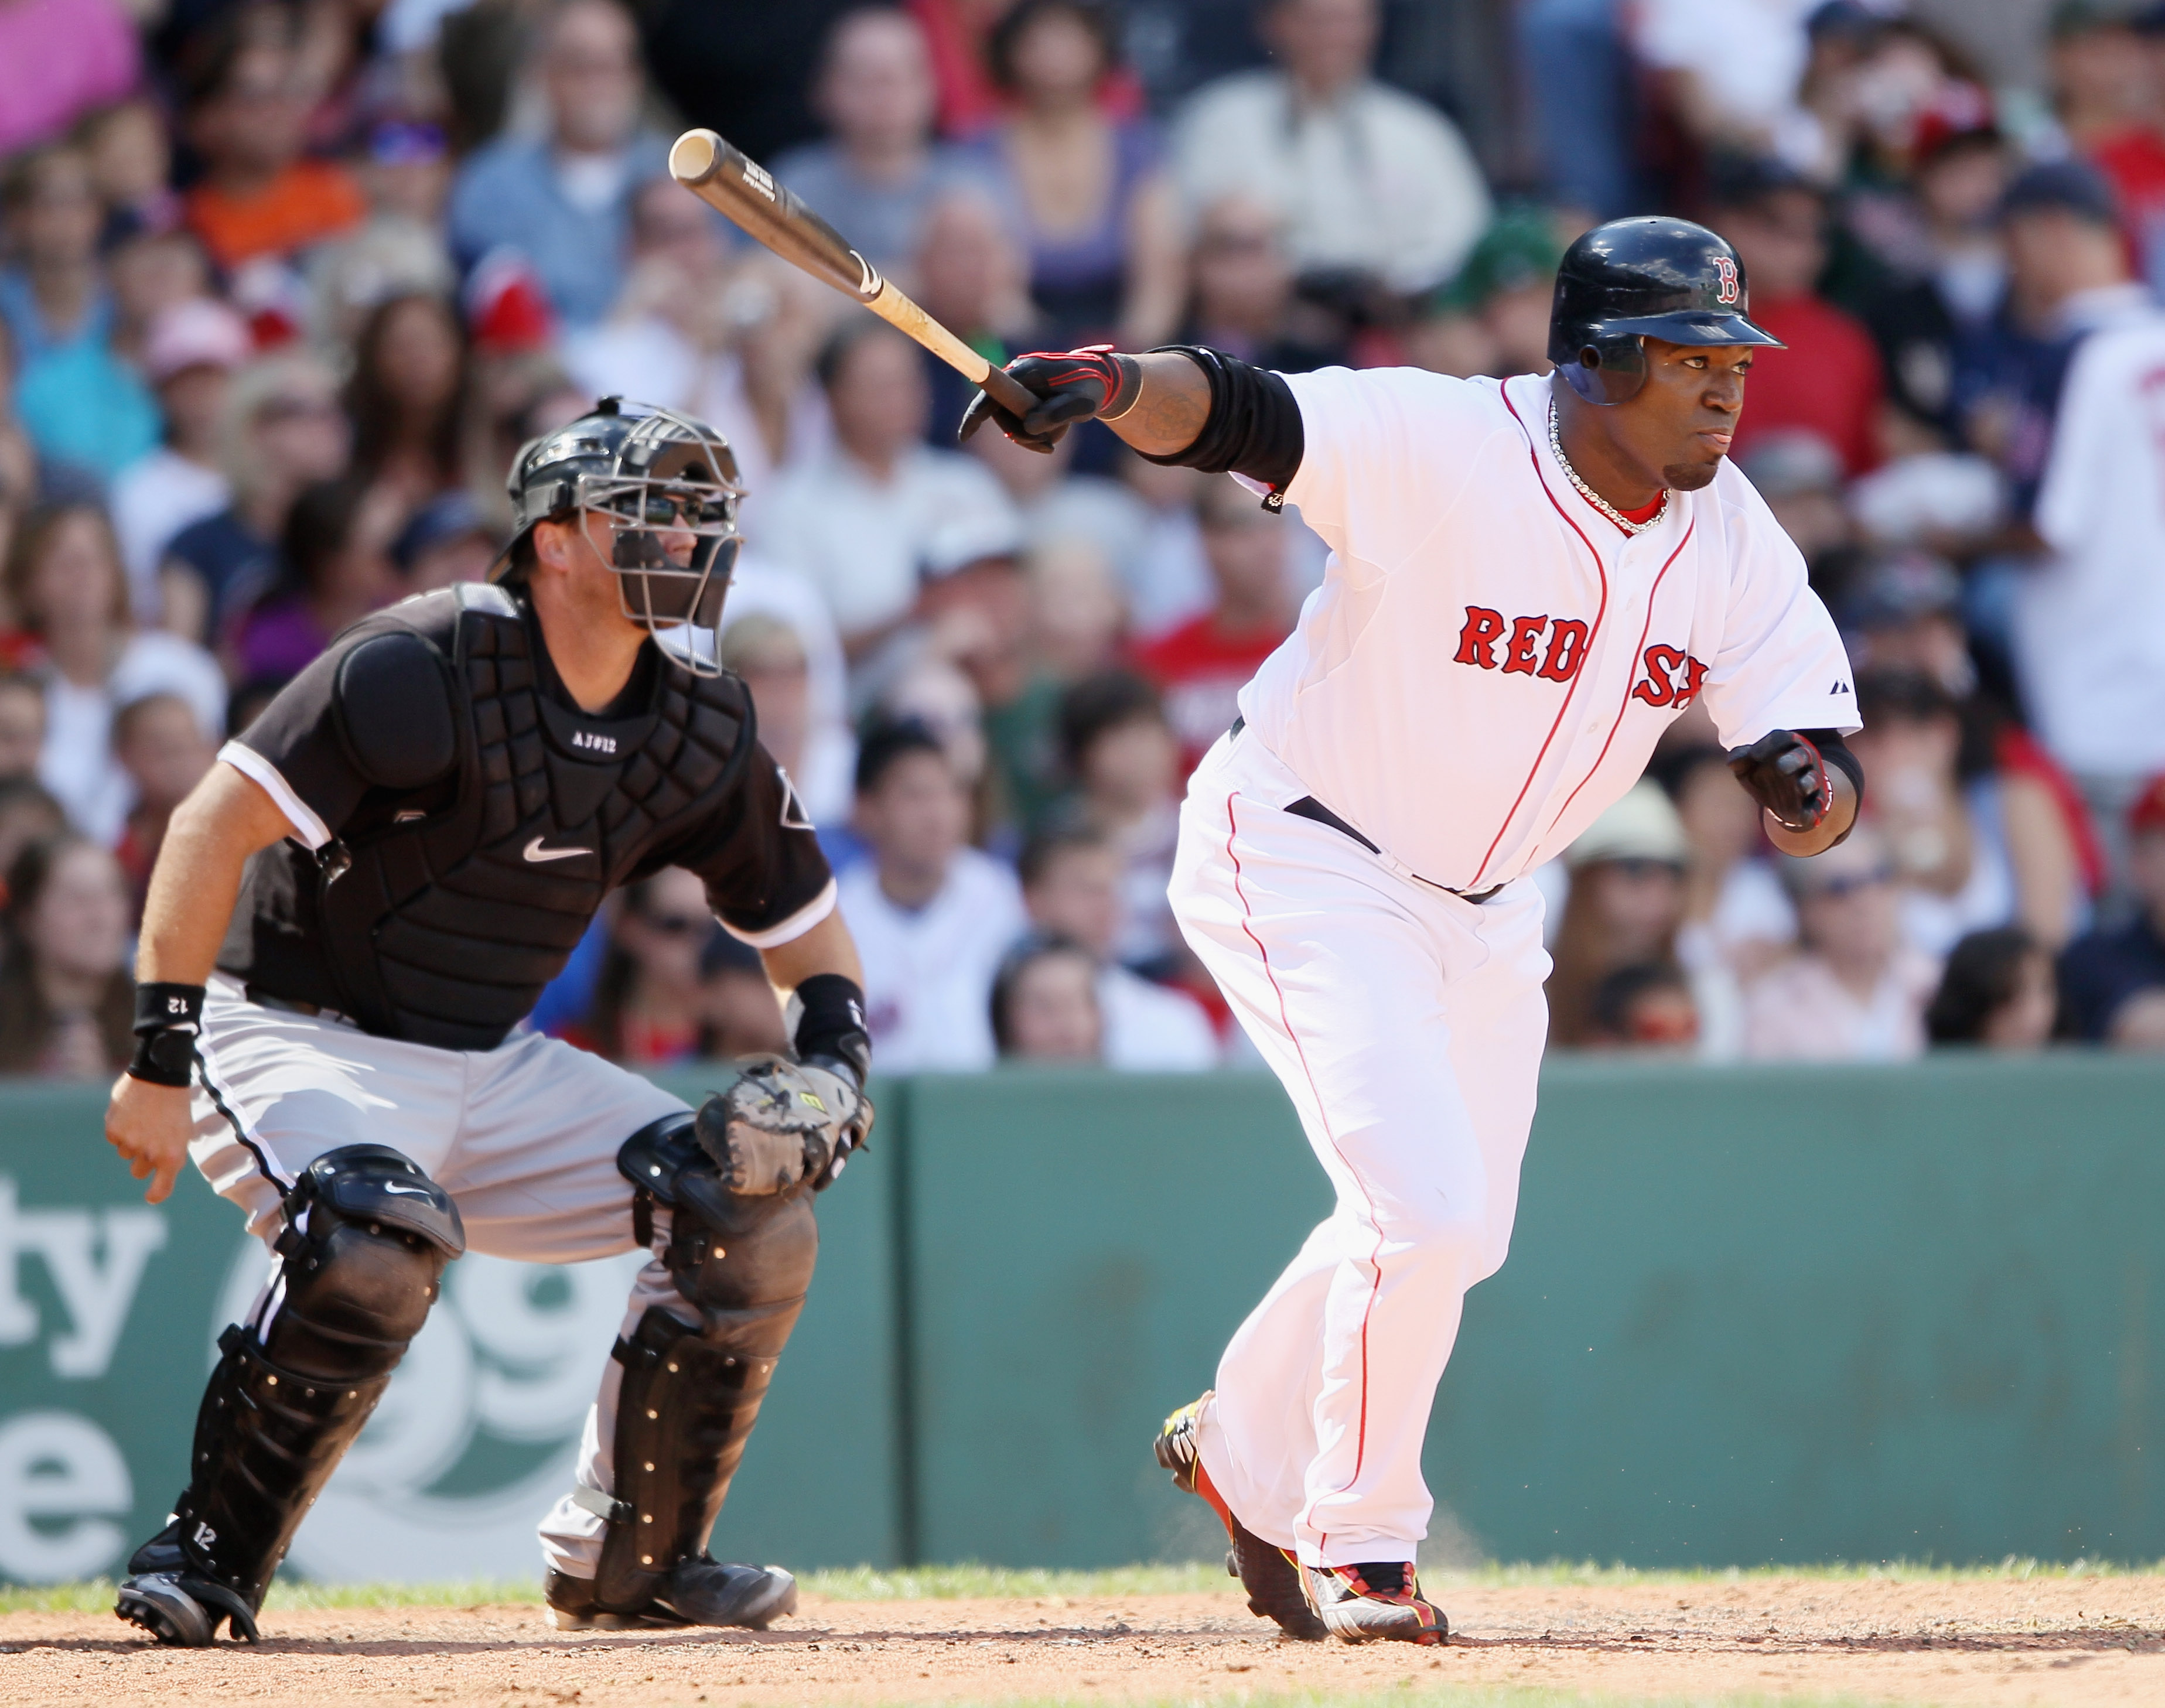 BOSTON - SEPTEMBER 05:  David Ortiz #34 of the Boston Red Sox hits a 2RBI double in the third inning as A.J. Pierzynski #12 the Chicago White Sox defends on September 5, 2010 at Fenway Park in Boston, Massachusetts.  (Photo by Elsa/Getty Images)